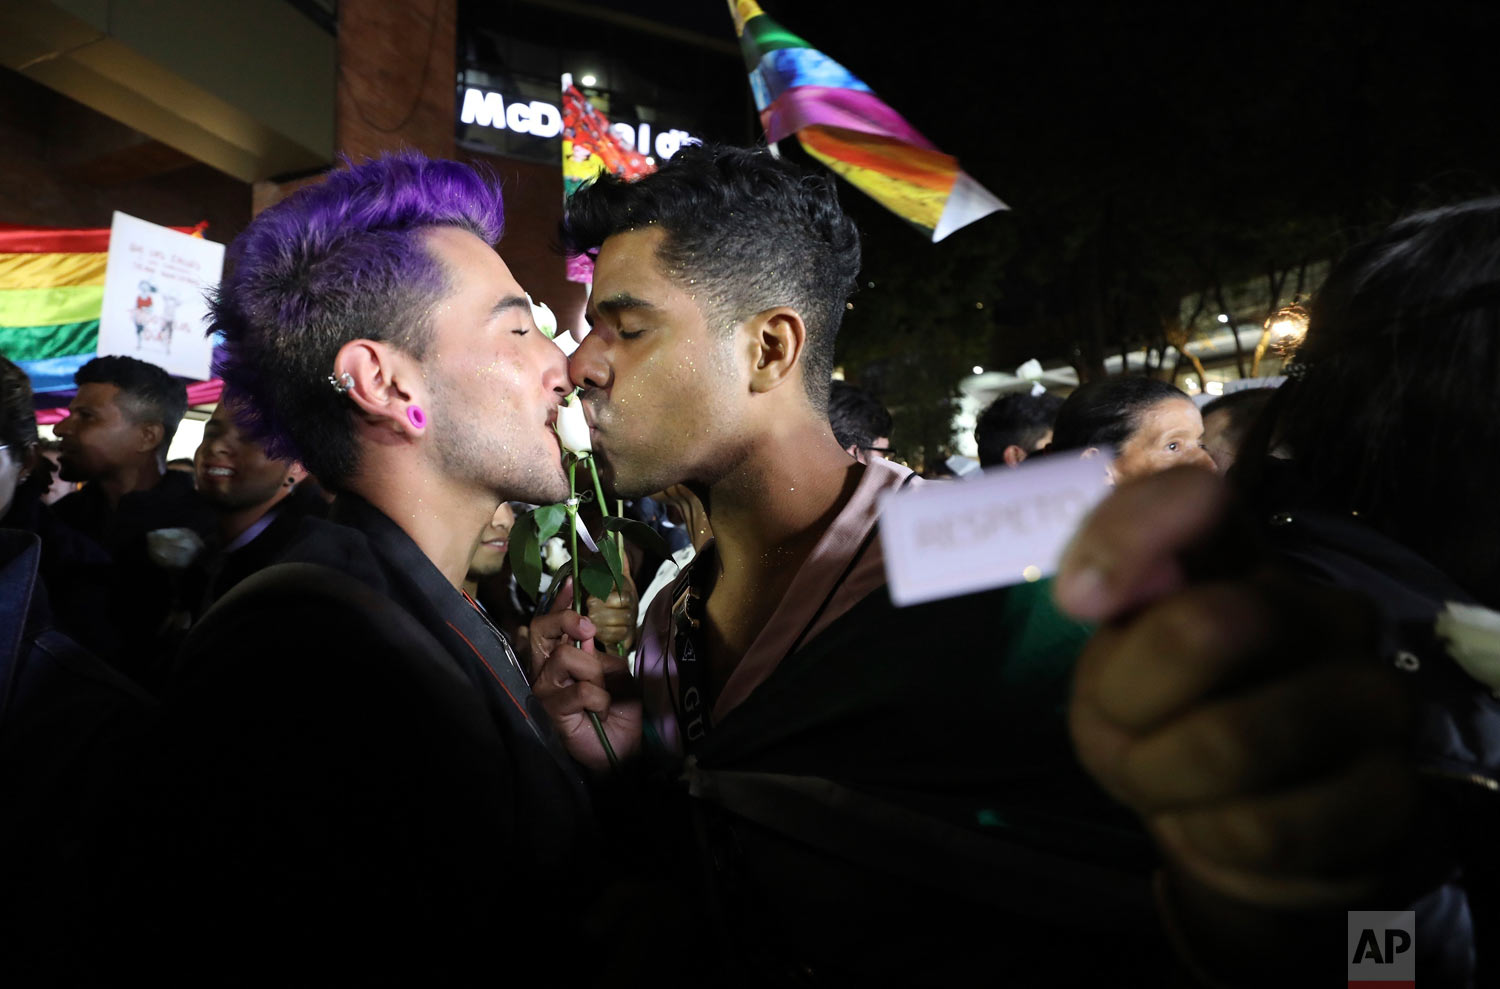 """A same sex couple kiss a rose during a """"Kiss-a-thon,"""" as a form of protest for LGBT rights and against discrimination in Bogota, Colombia, April 17, 2019. (AP Photo/Fernando Vergara)"""